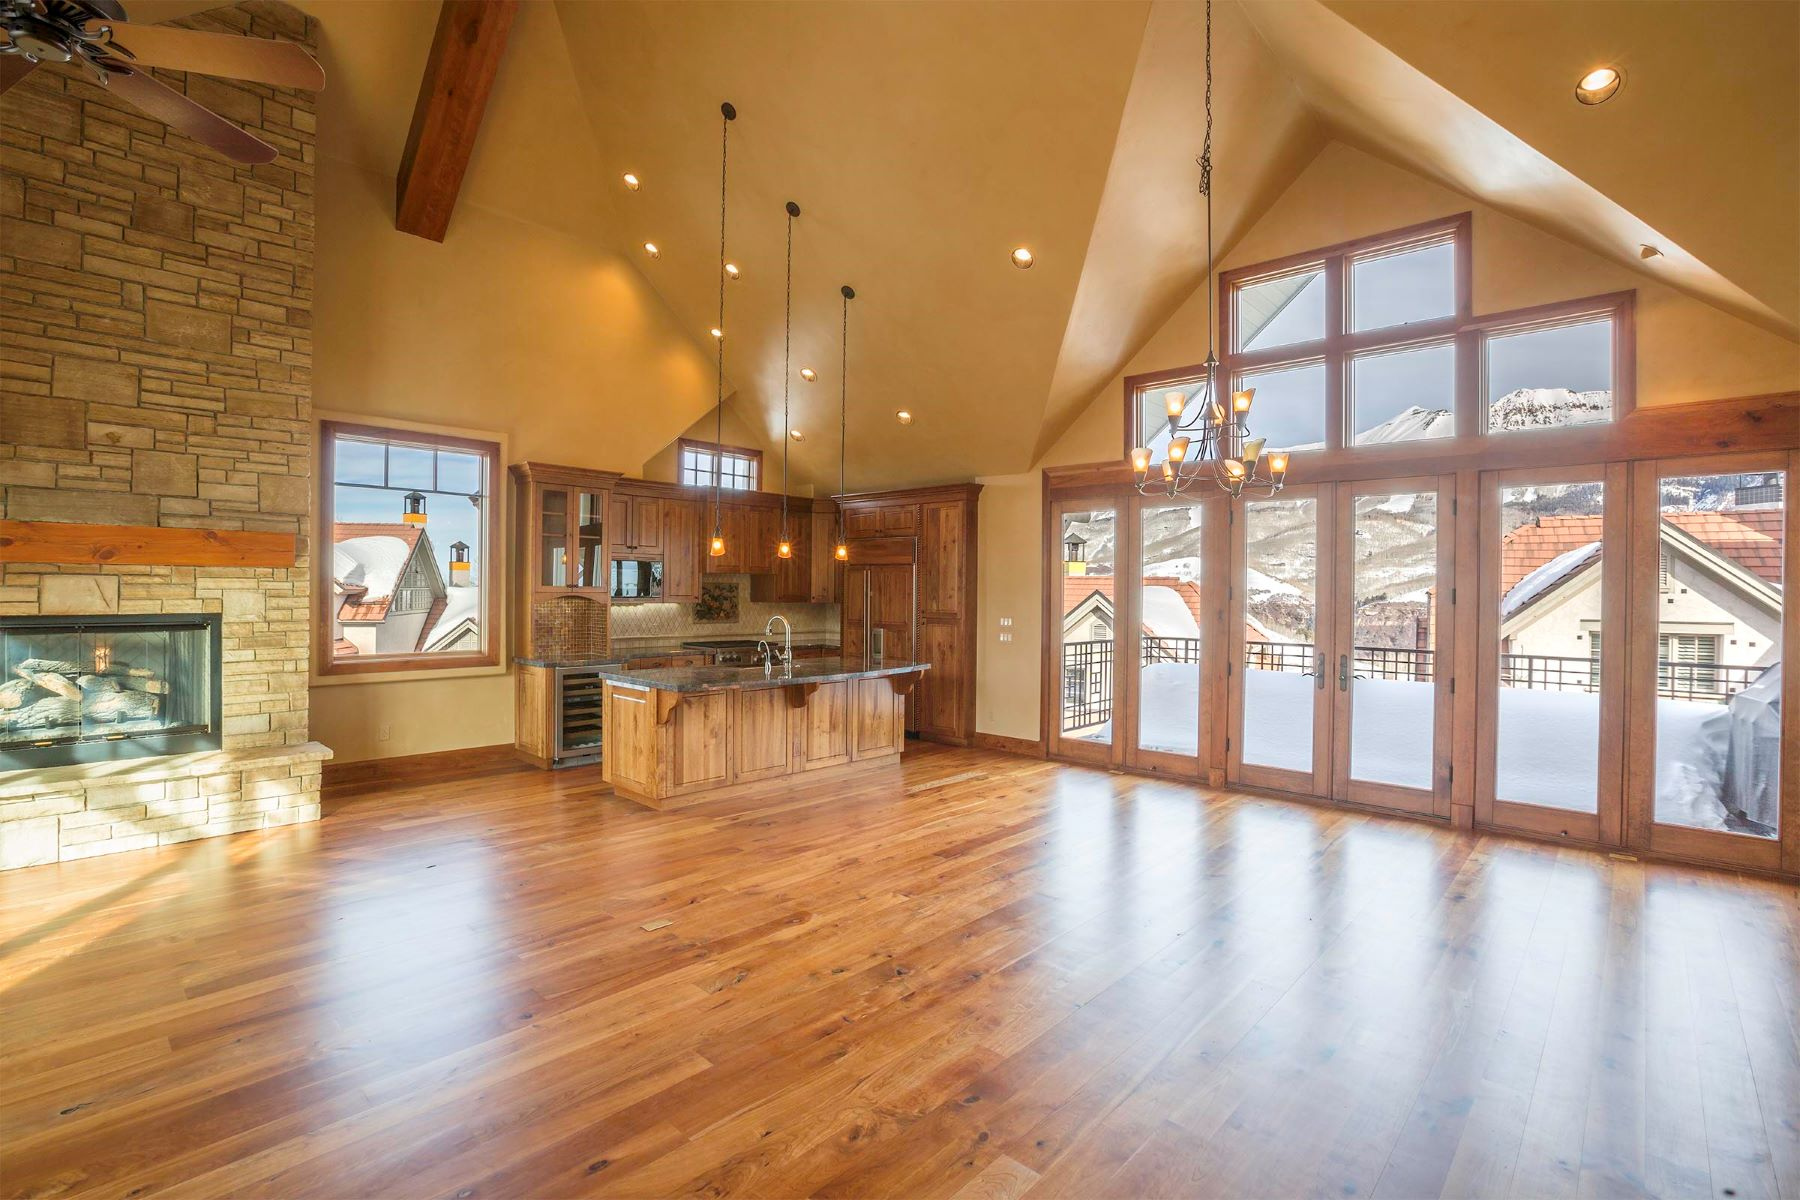 Condominium for Sale at Aspen Ridge 29 110 Aspen Ridge Drive, Unit 29 Telluride, Colorado, 81435 United States